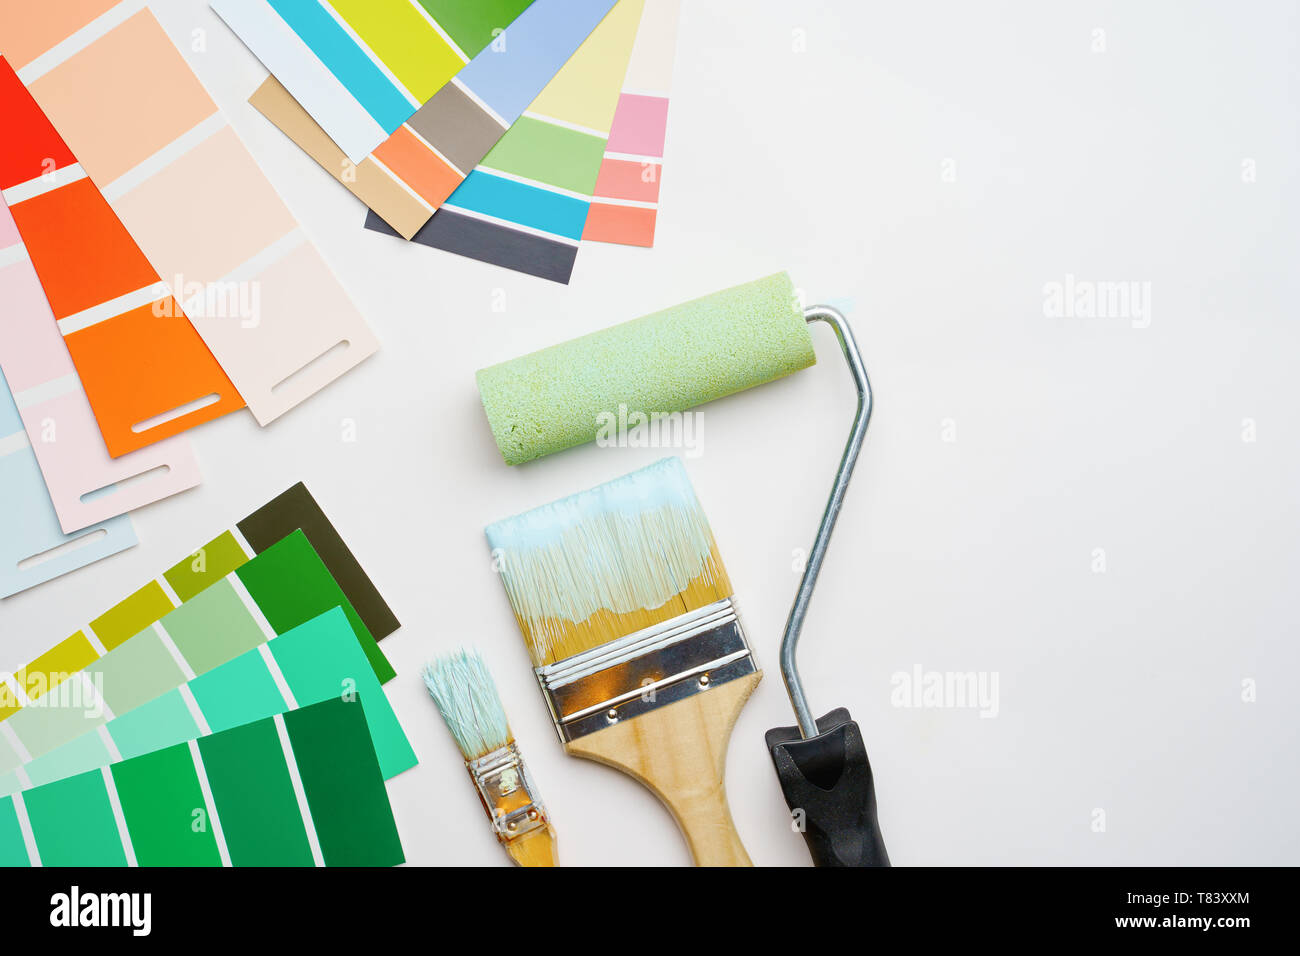 Image of palette with blue and green colors, roller, brushes - Stock Image